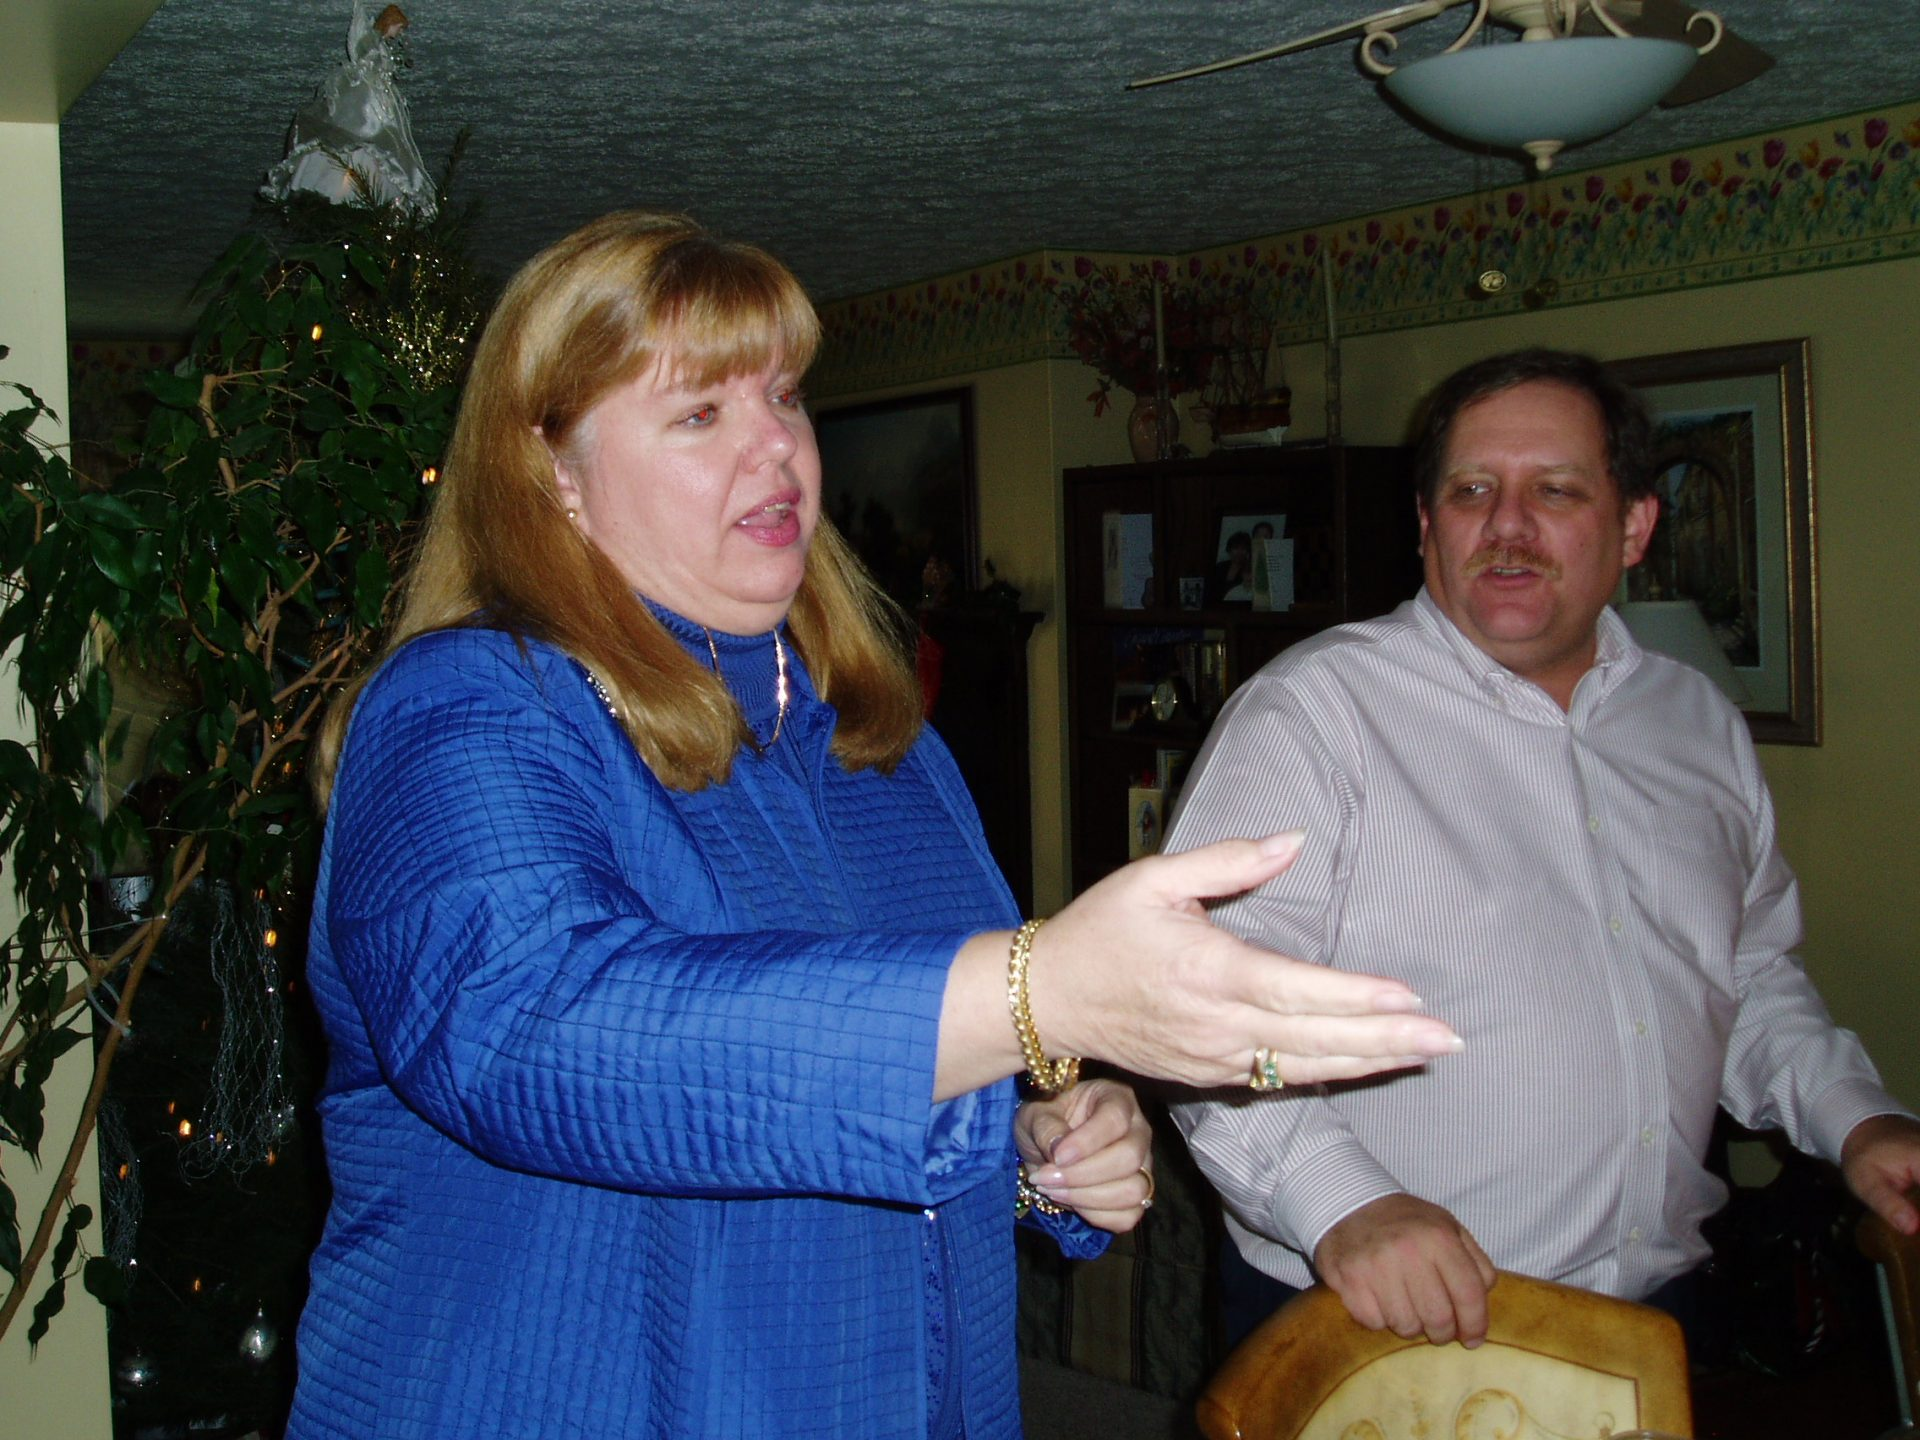 Sue telling stories at Ann Lowden's Holiday Party 2006.